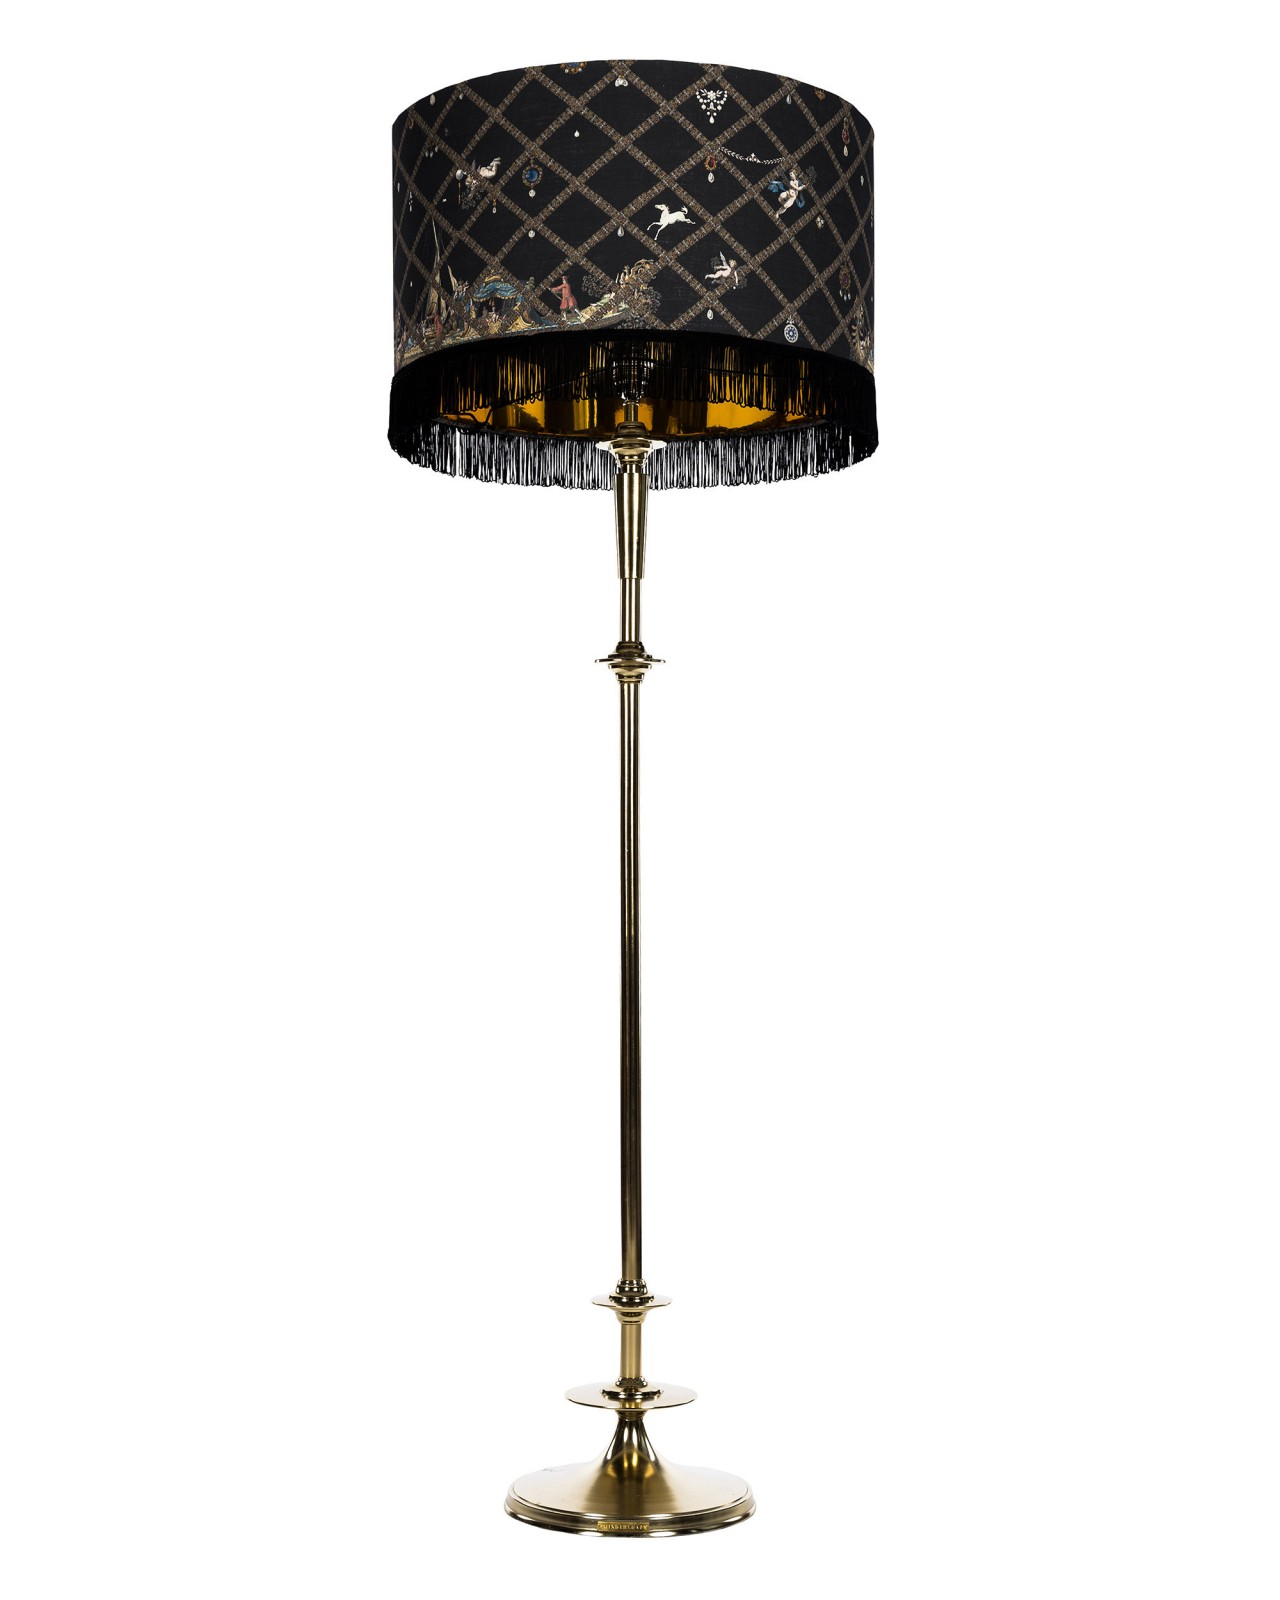 PRECIOUS LIFE REGENCY Floor Lamp